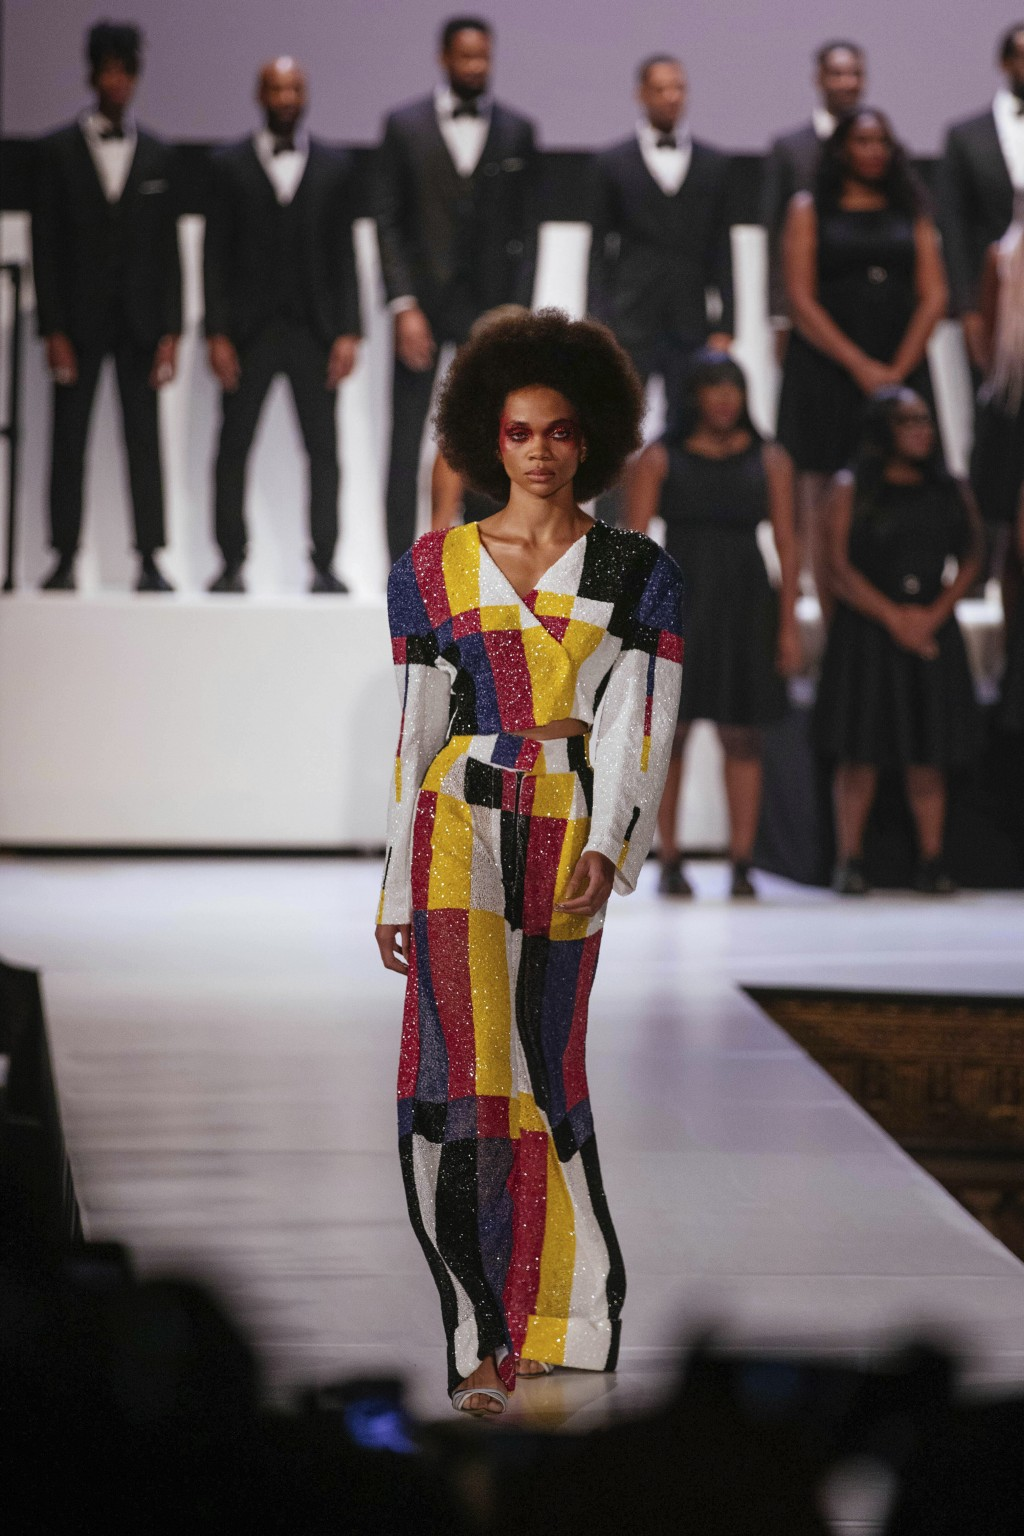 The Pyer Moss collection is modeled during Fashion Week, Sunday, Sept. 8, 2019 in New York. (AP Photo/Kevin Hagen)